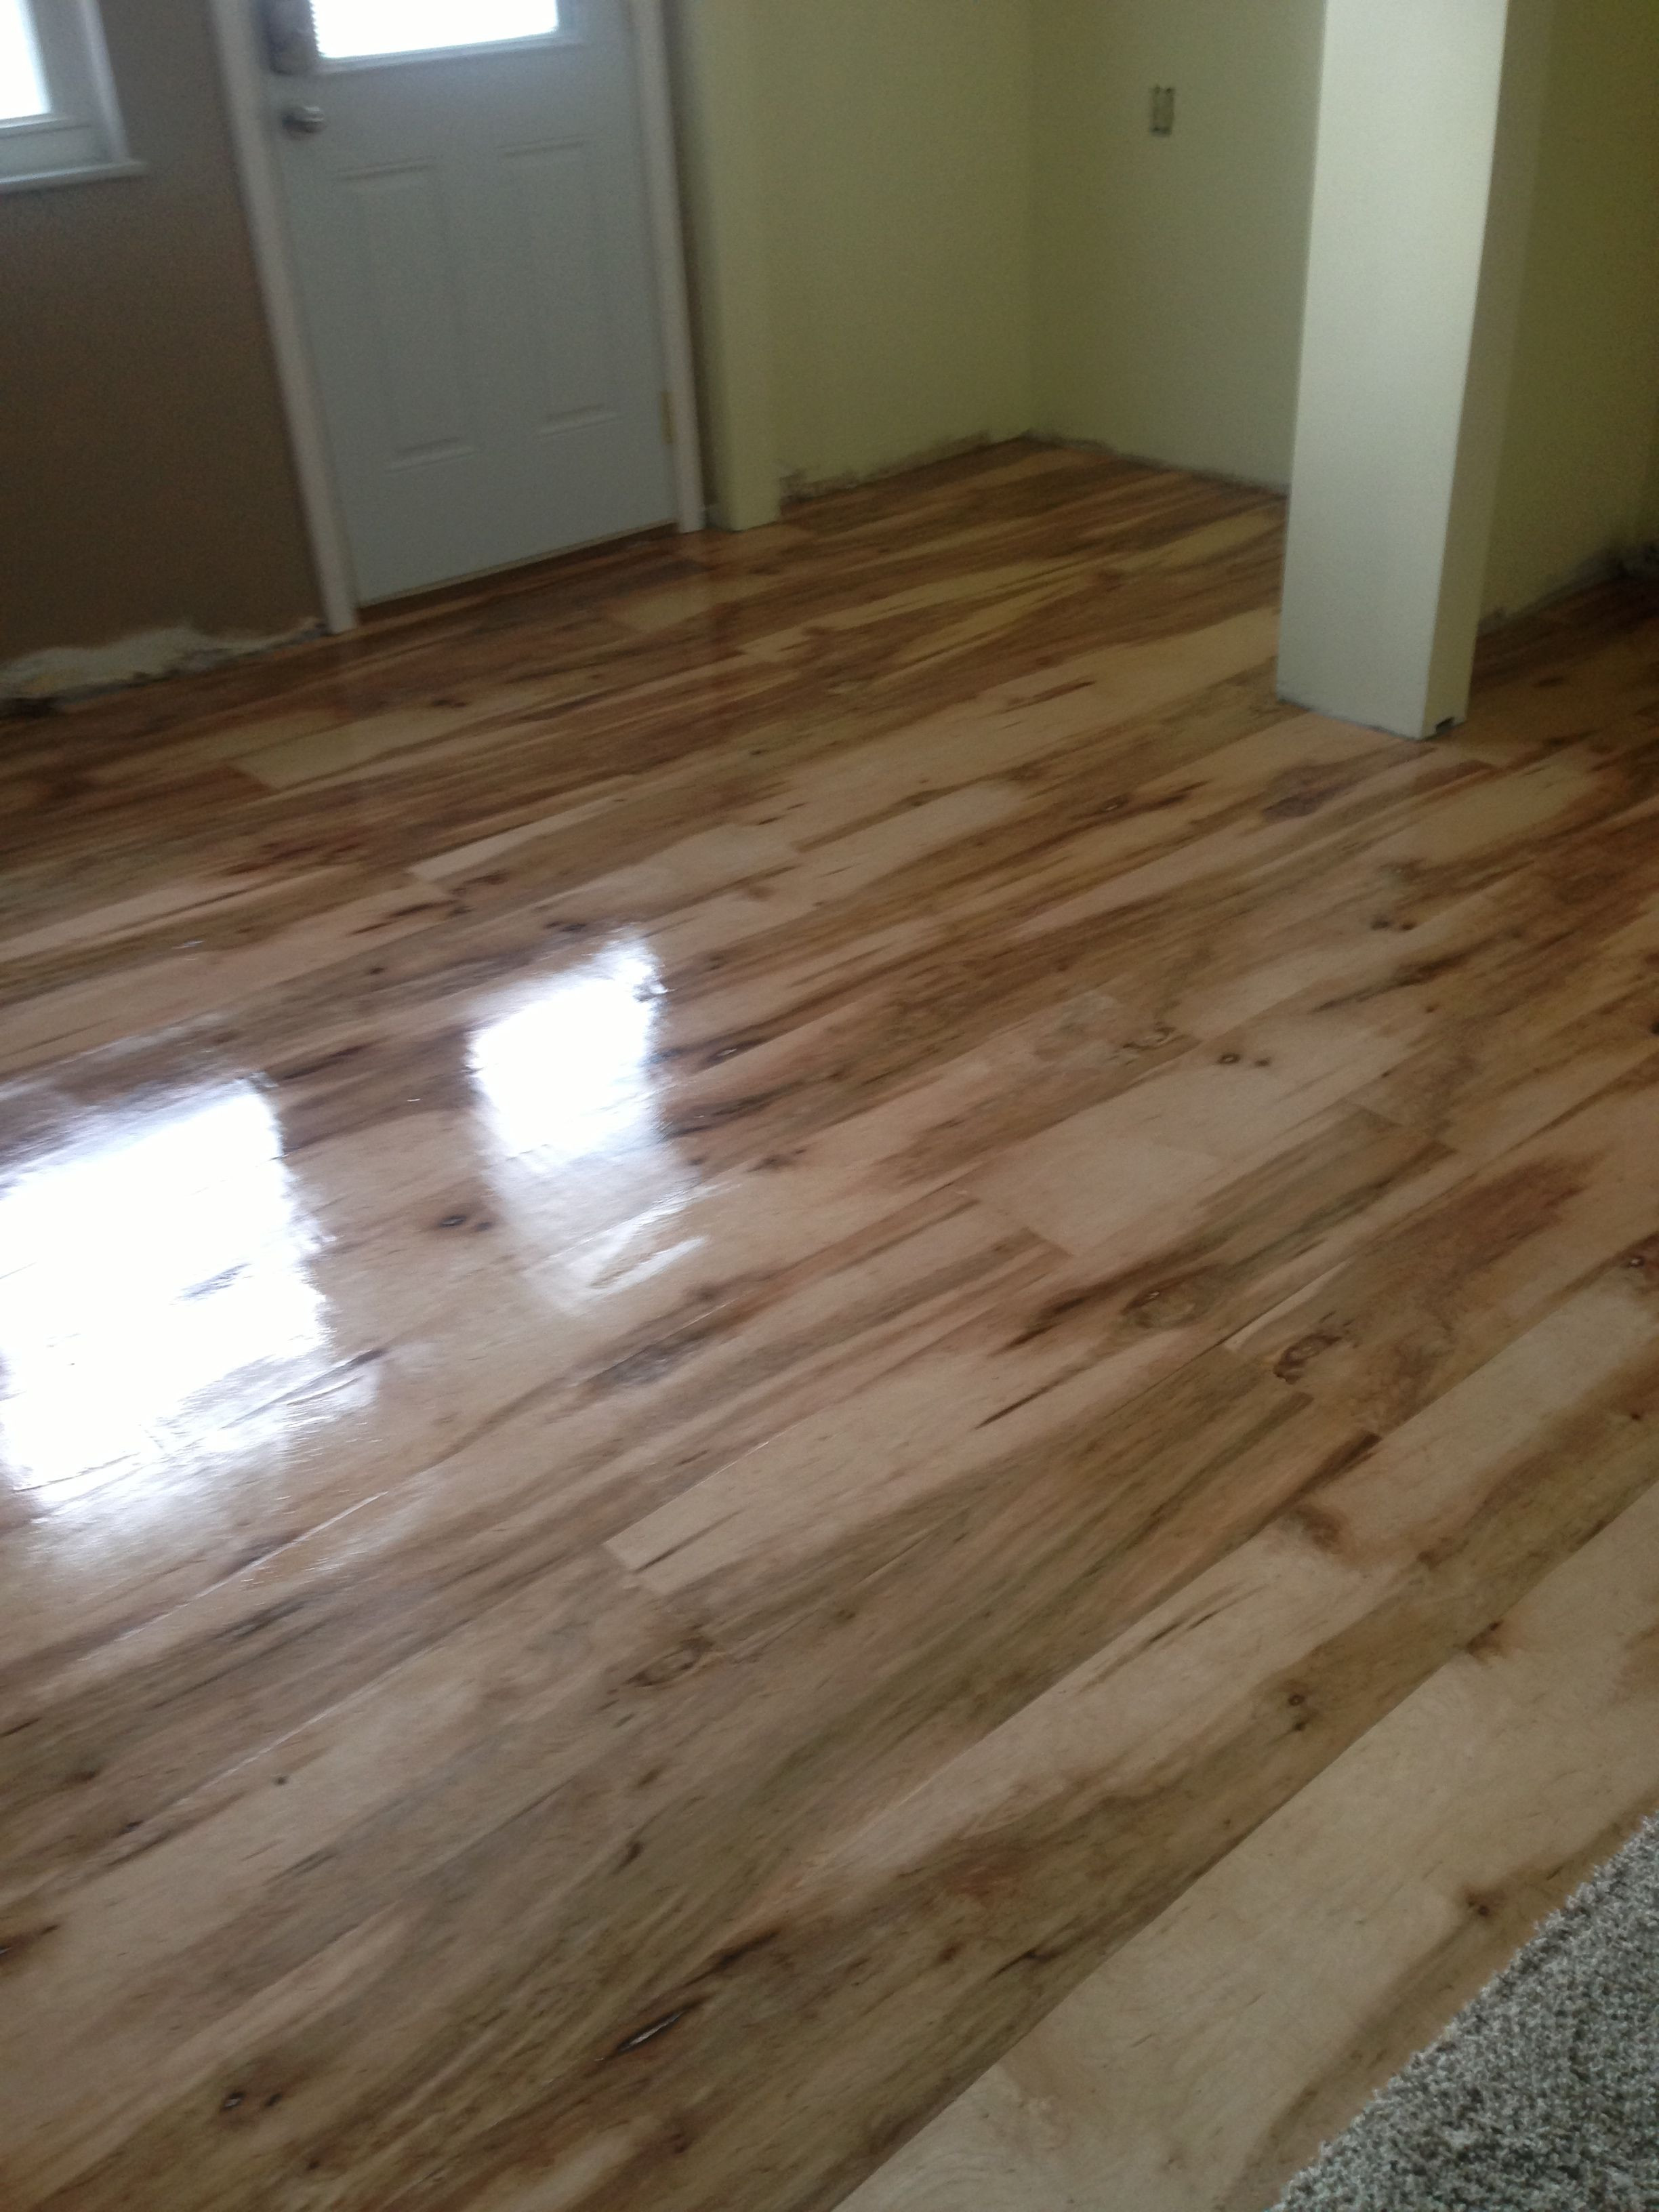 Discount Hardwood Flooring toronto Of Direct Flooring Hardwood Floor Stairs Podemosleganes Floor Plan Intended for Direct Flooring Fabulous Discount Hardwood Flooring 0 Floor Brampton 25 toronto